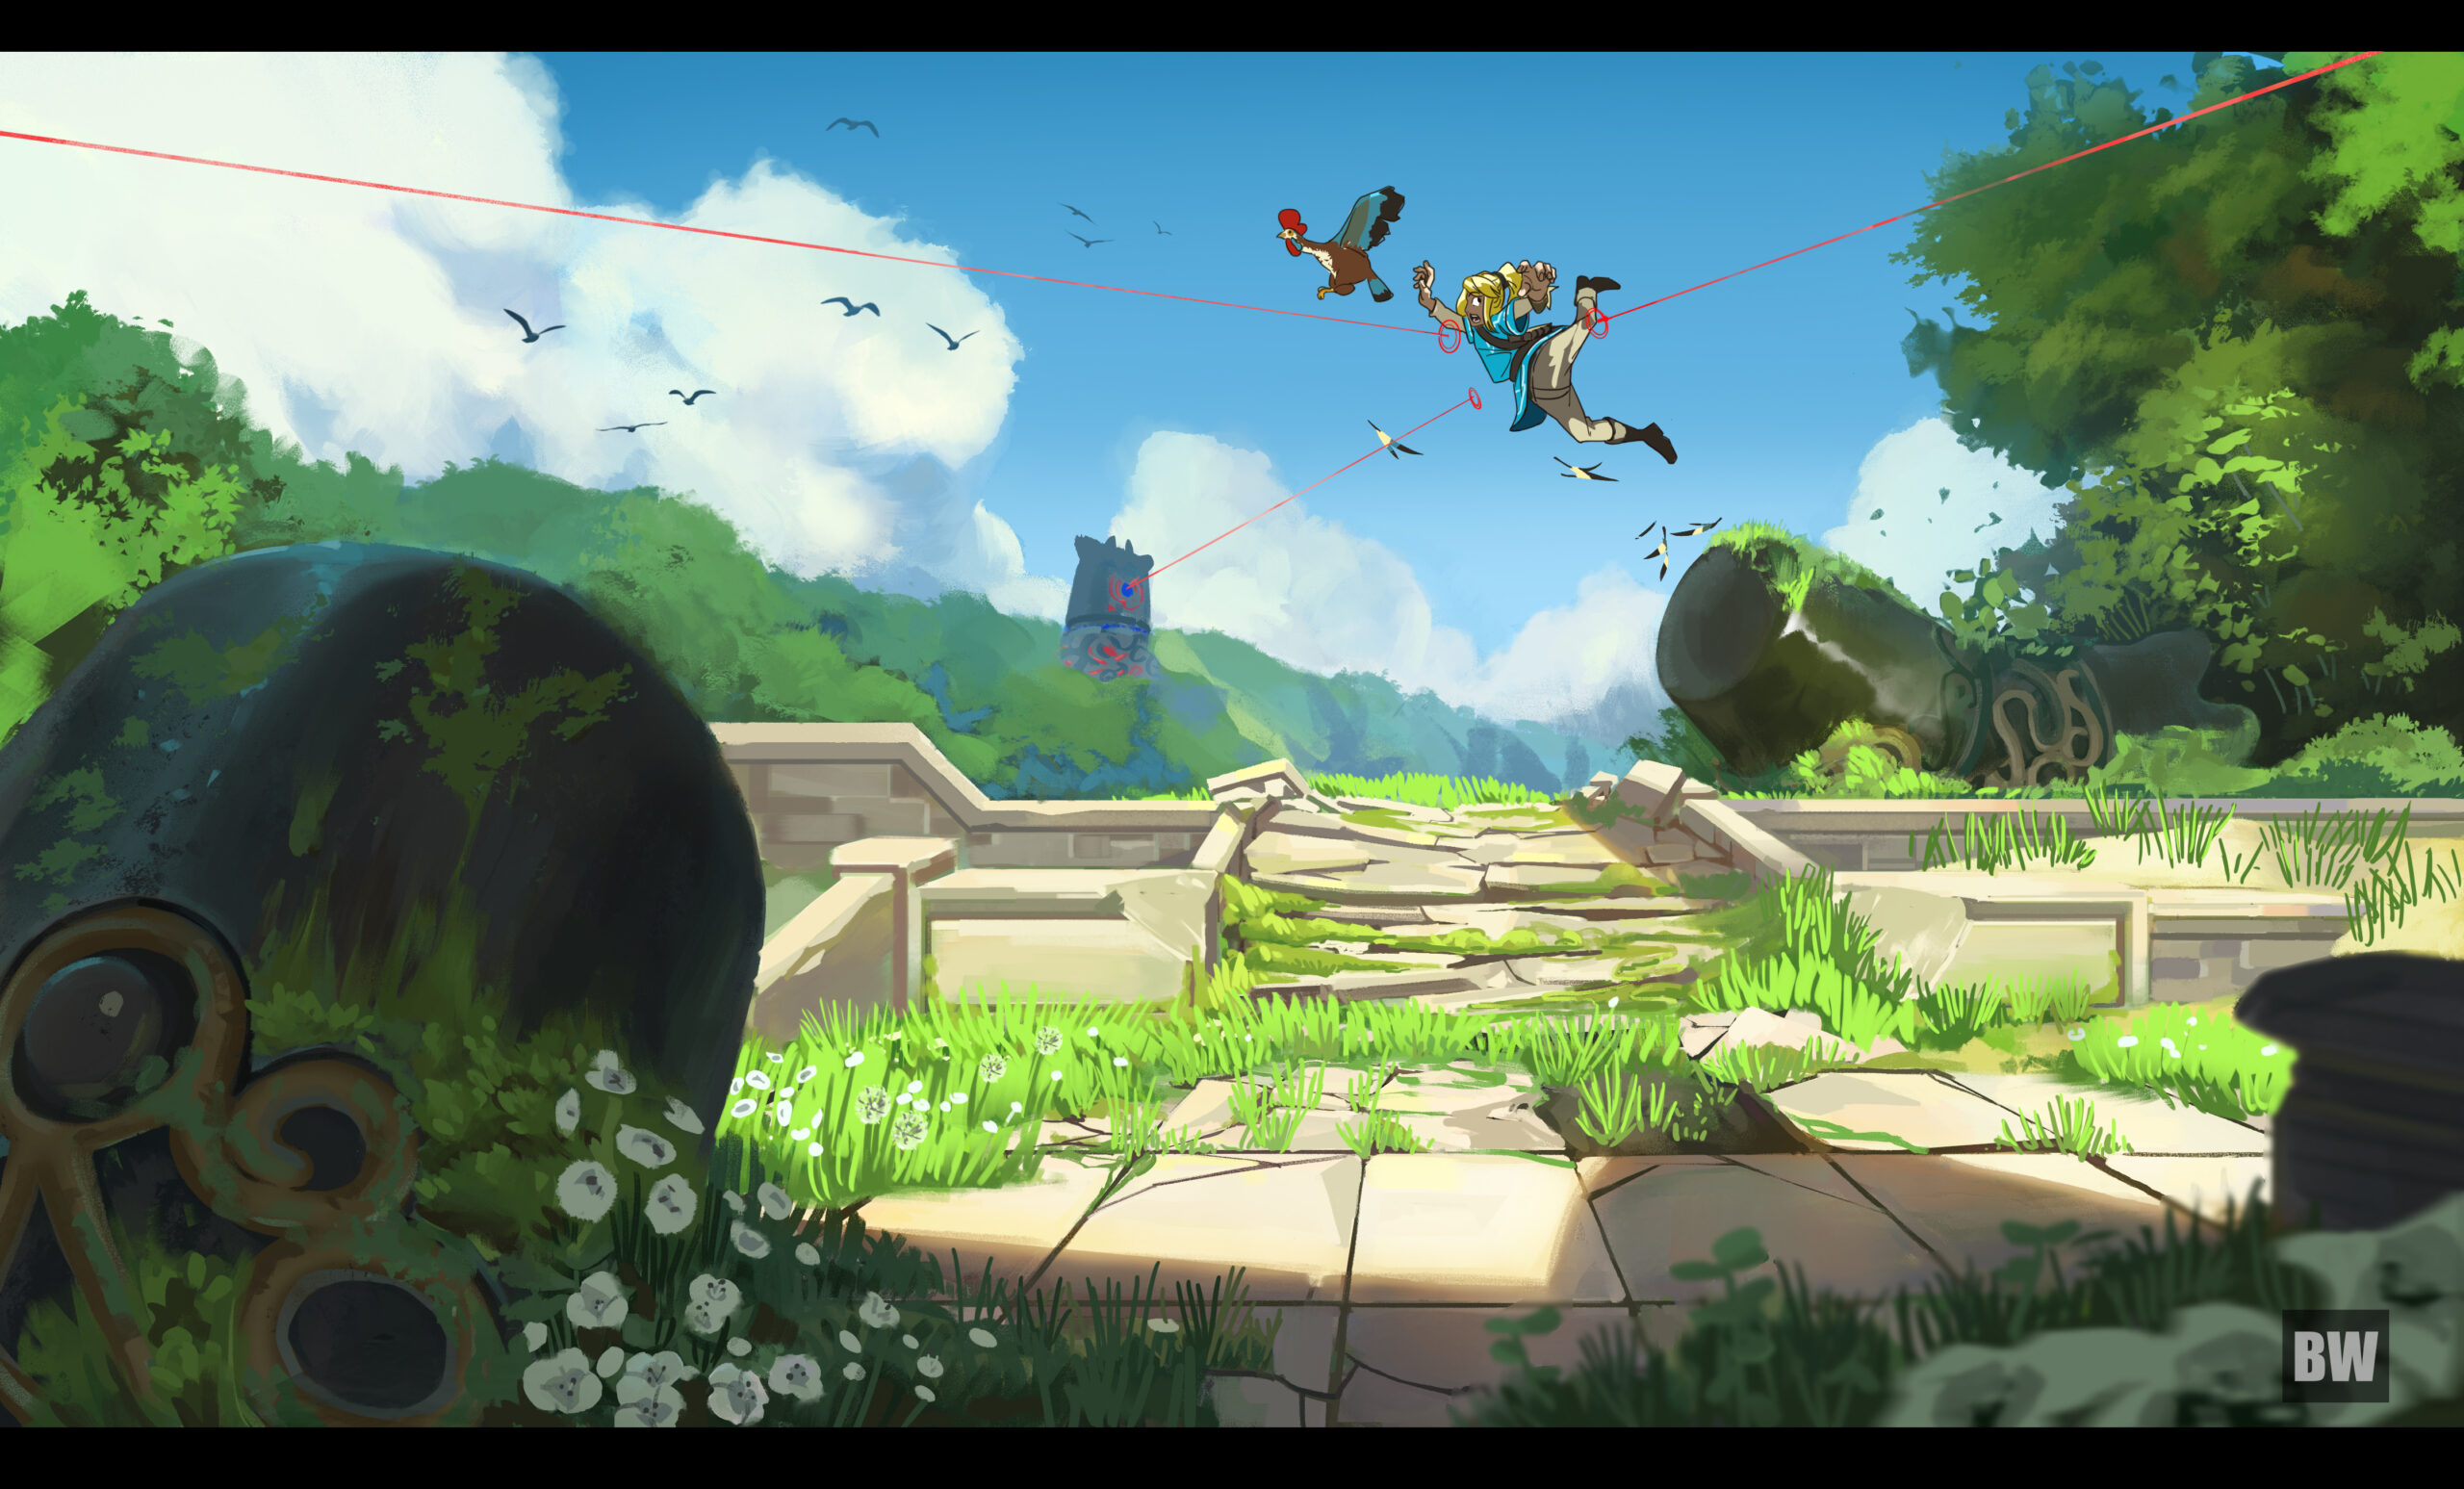 Environment and Character Artist open for Commissions, Come peep my artwork!